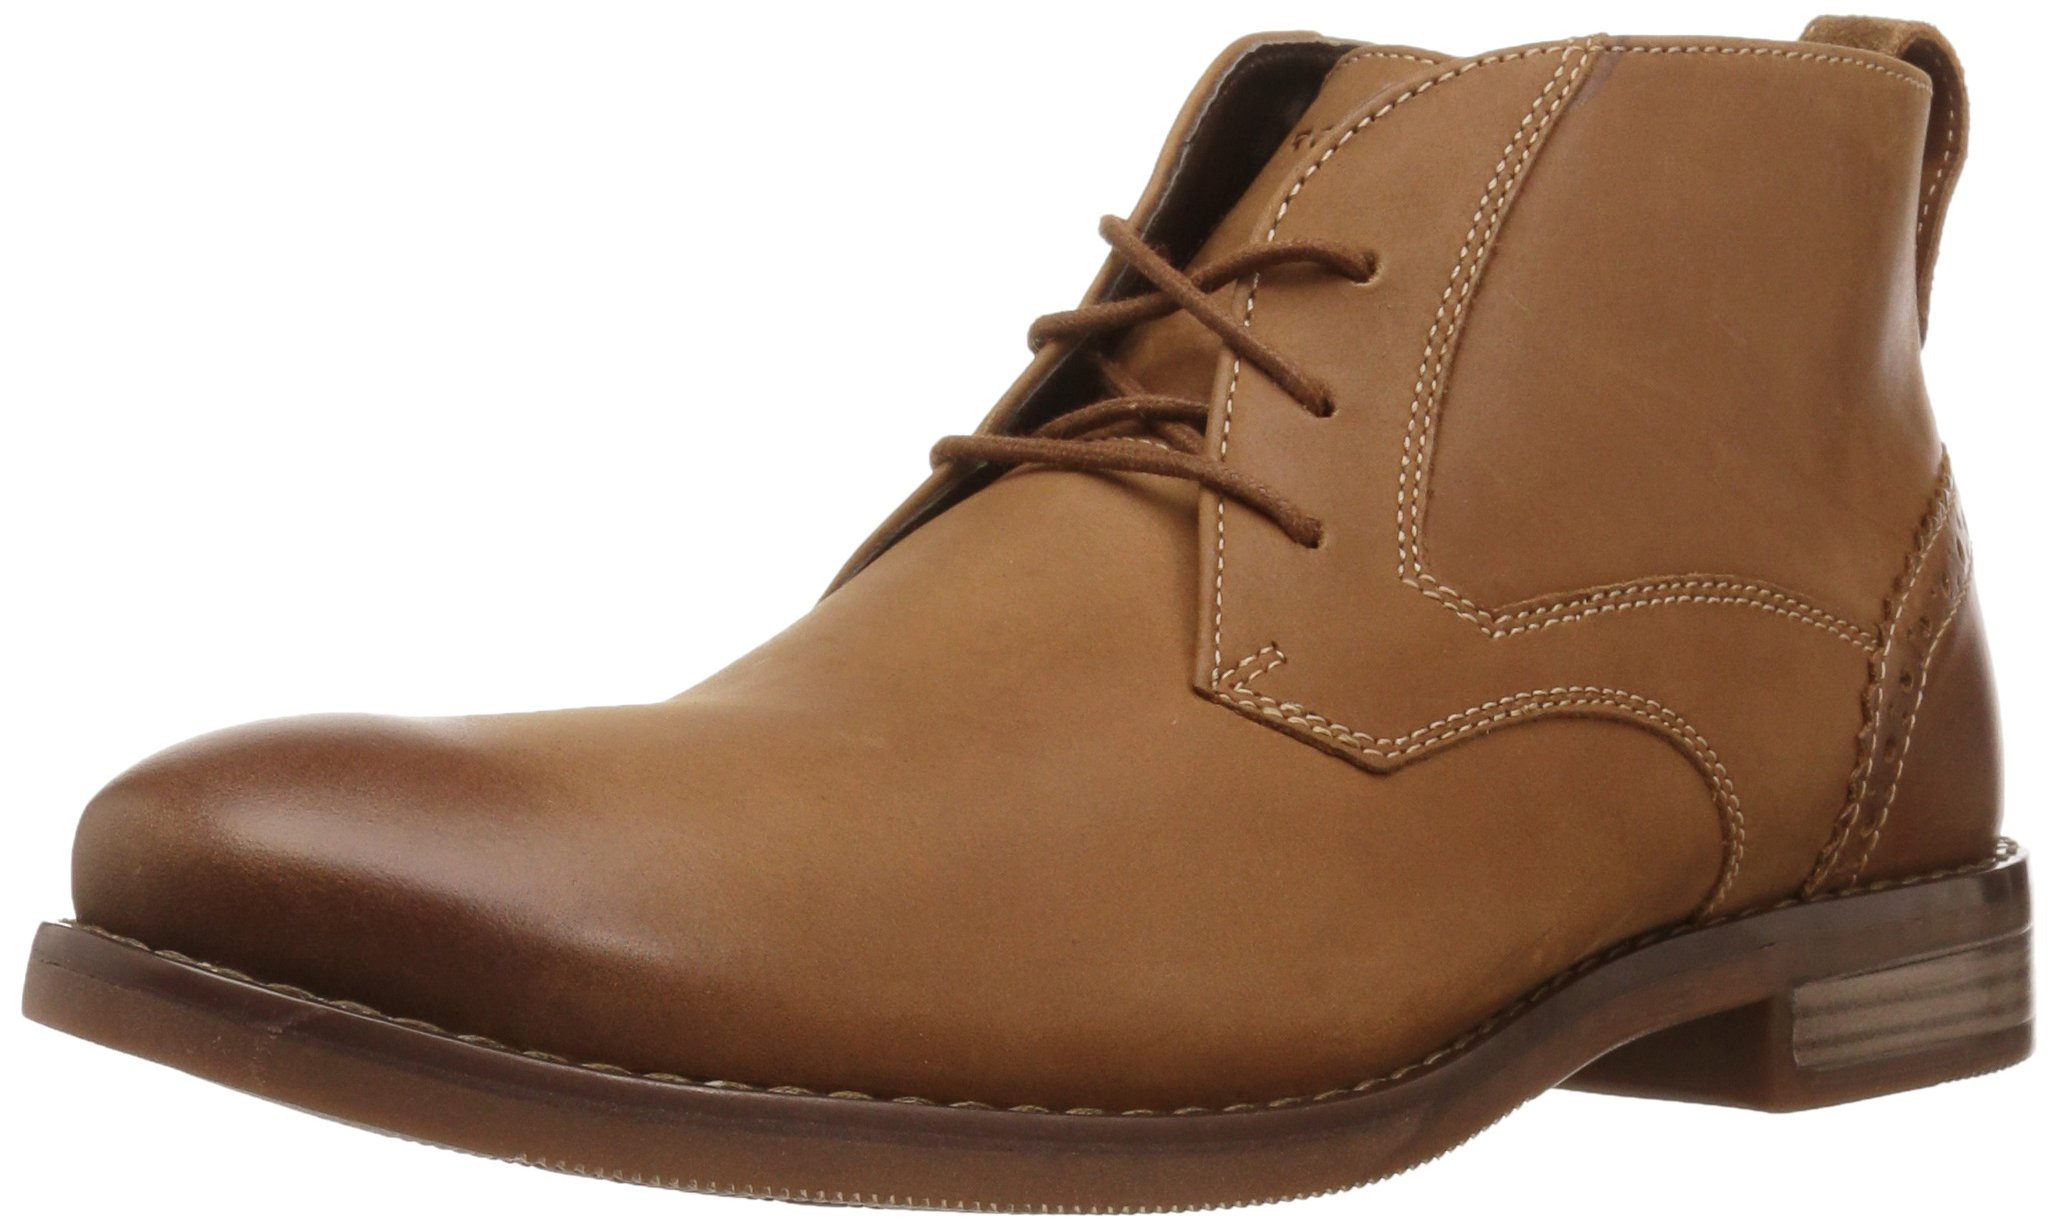 Rockport Men's Karwin Chukka Chukka Boot, Tobacco, 8.5 M US